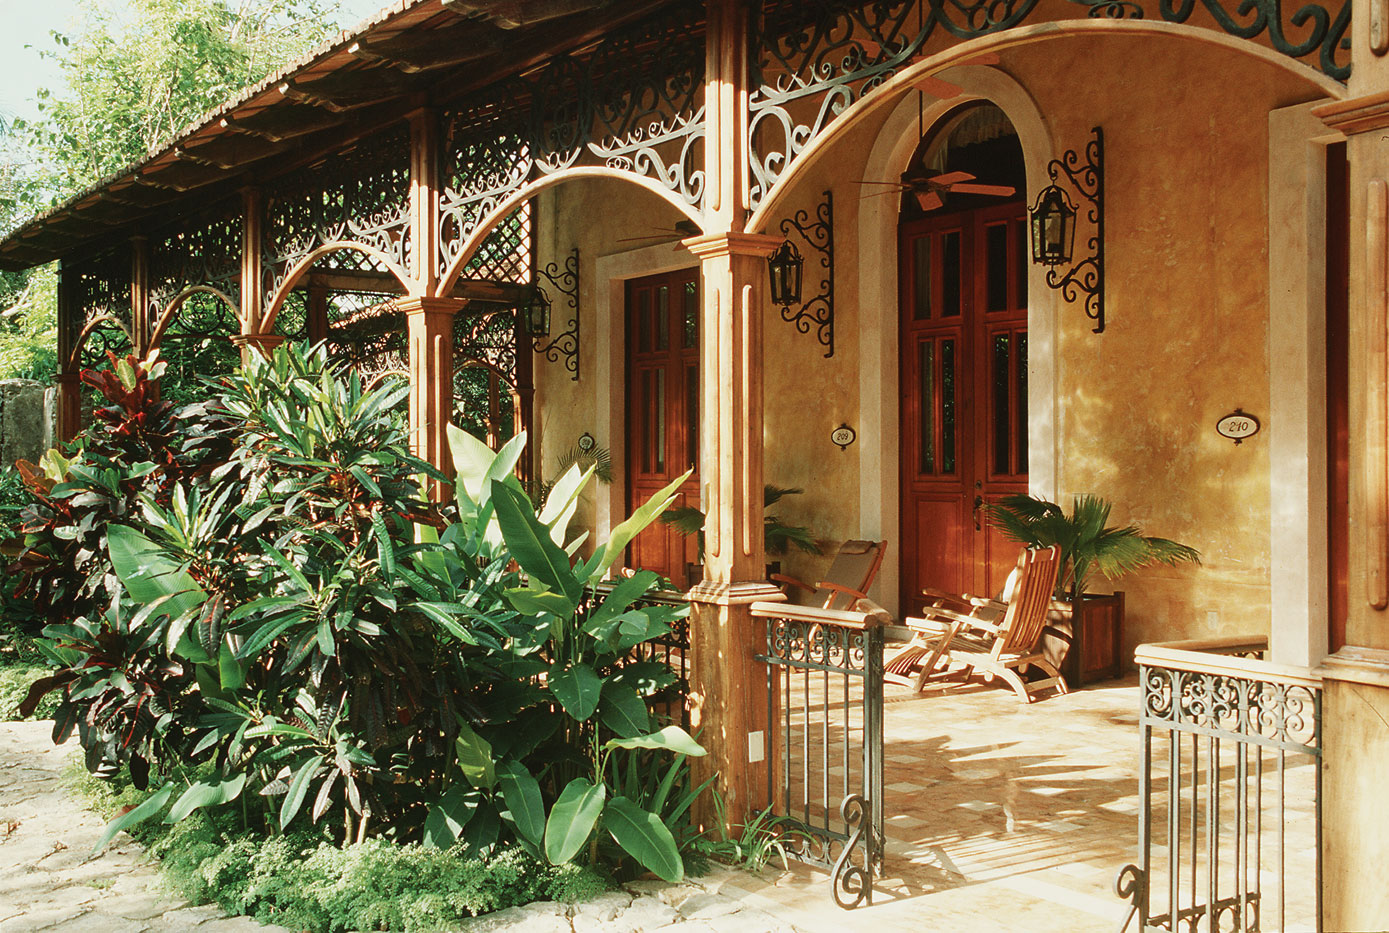 Decoracion Etnica Hotel Of The Week – Hacienda Xcanatun – Merida, Mexcio